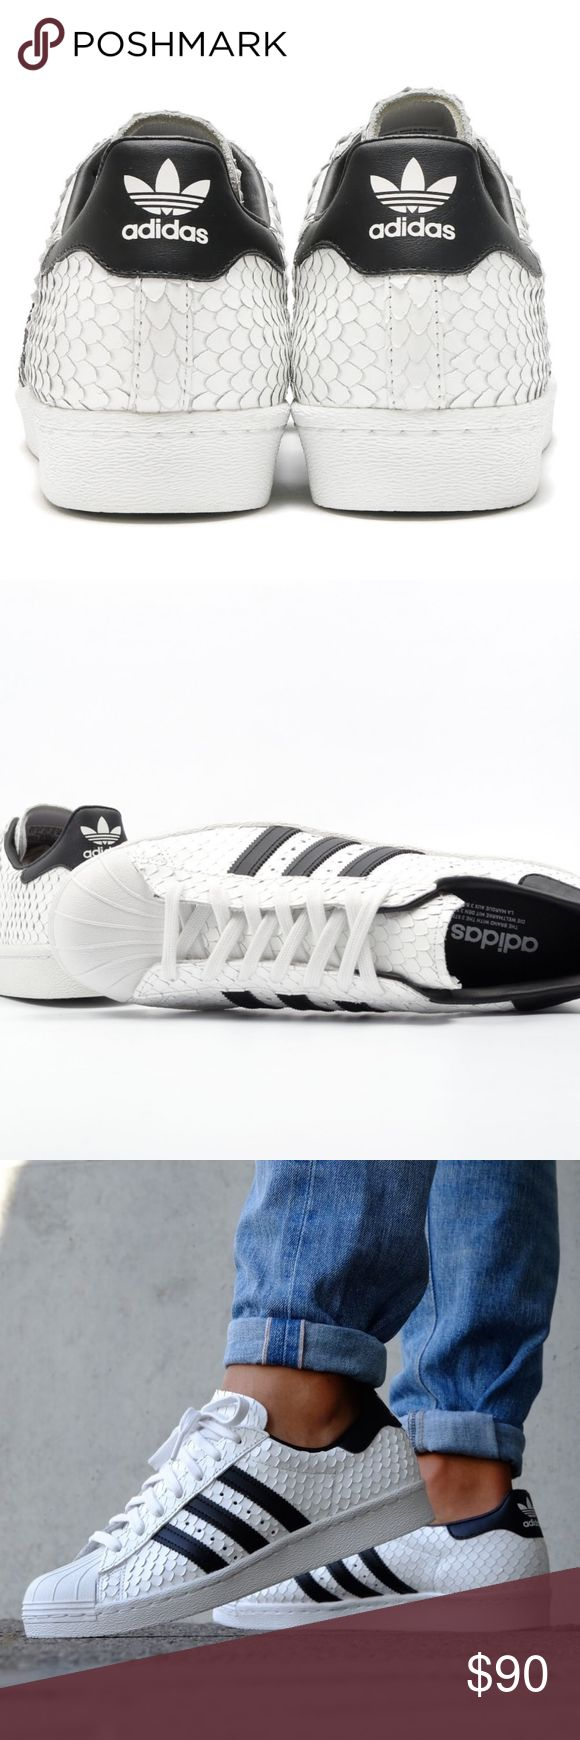 adidas Originals Superstar Snake White Sneakers Open to reasonable offers.   - Fishskin-look leather upper - Classic rubber shell toe - Leather lining - Printed Trefoil logo on heel patch  -Herringbone-pattern rubber cupsole adidas Shoes Sneakers